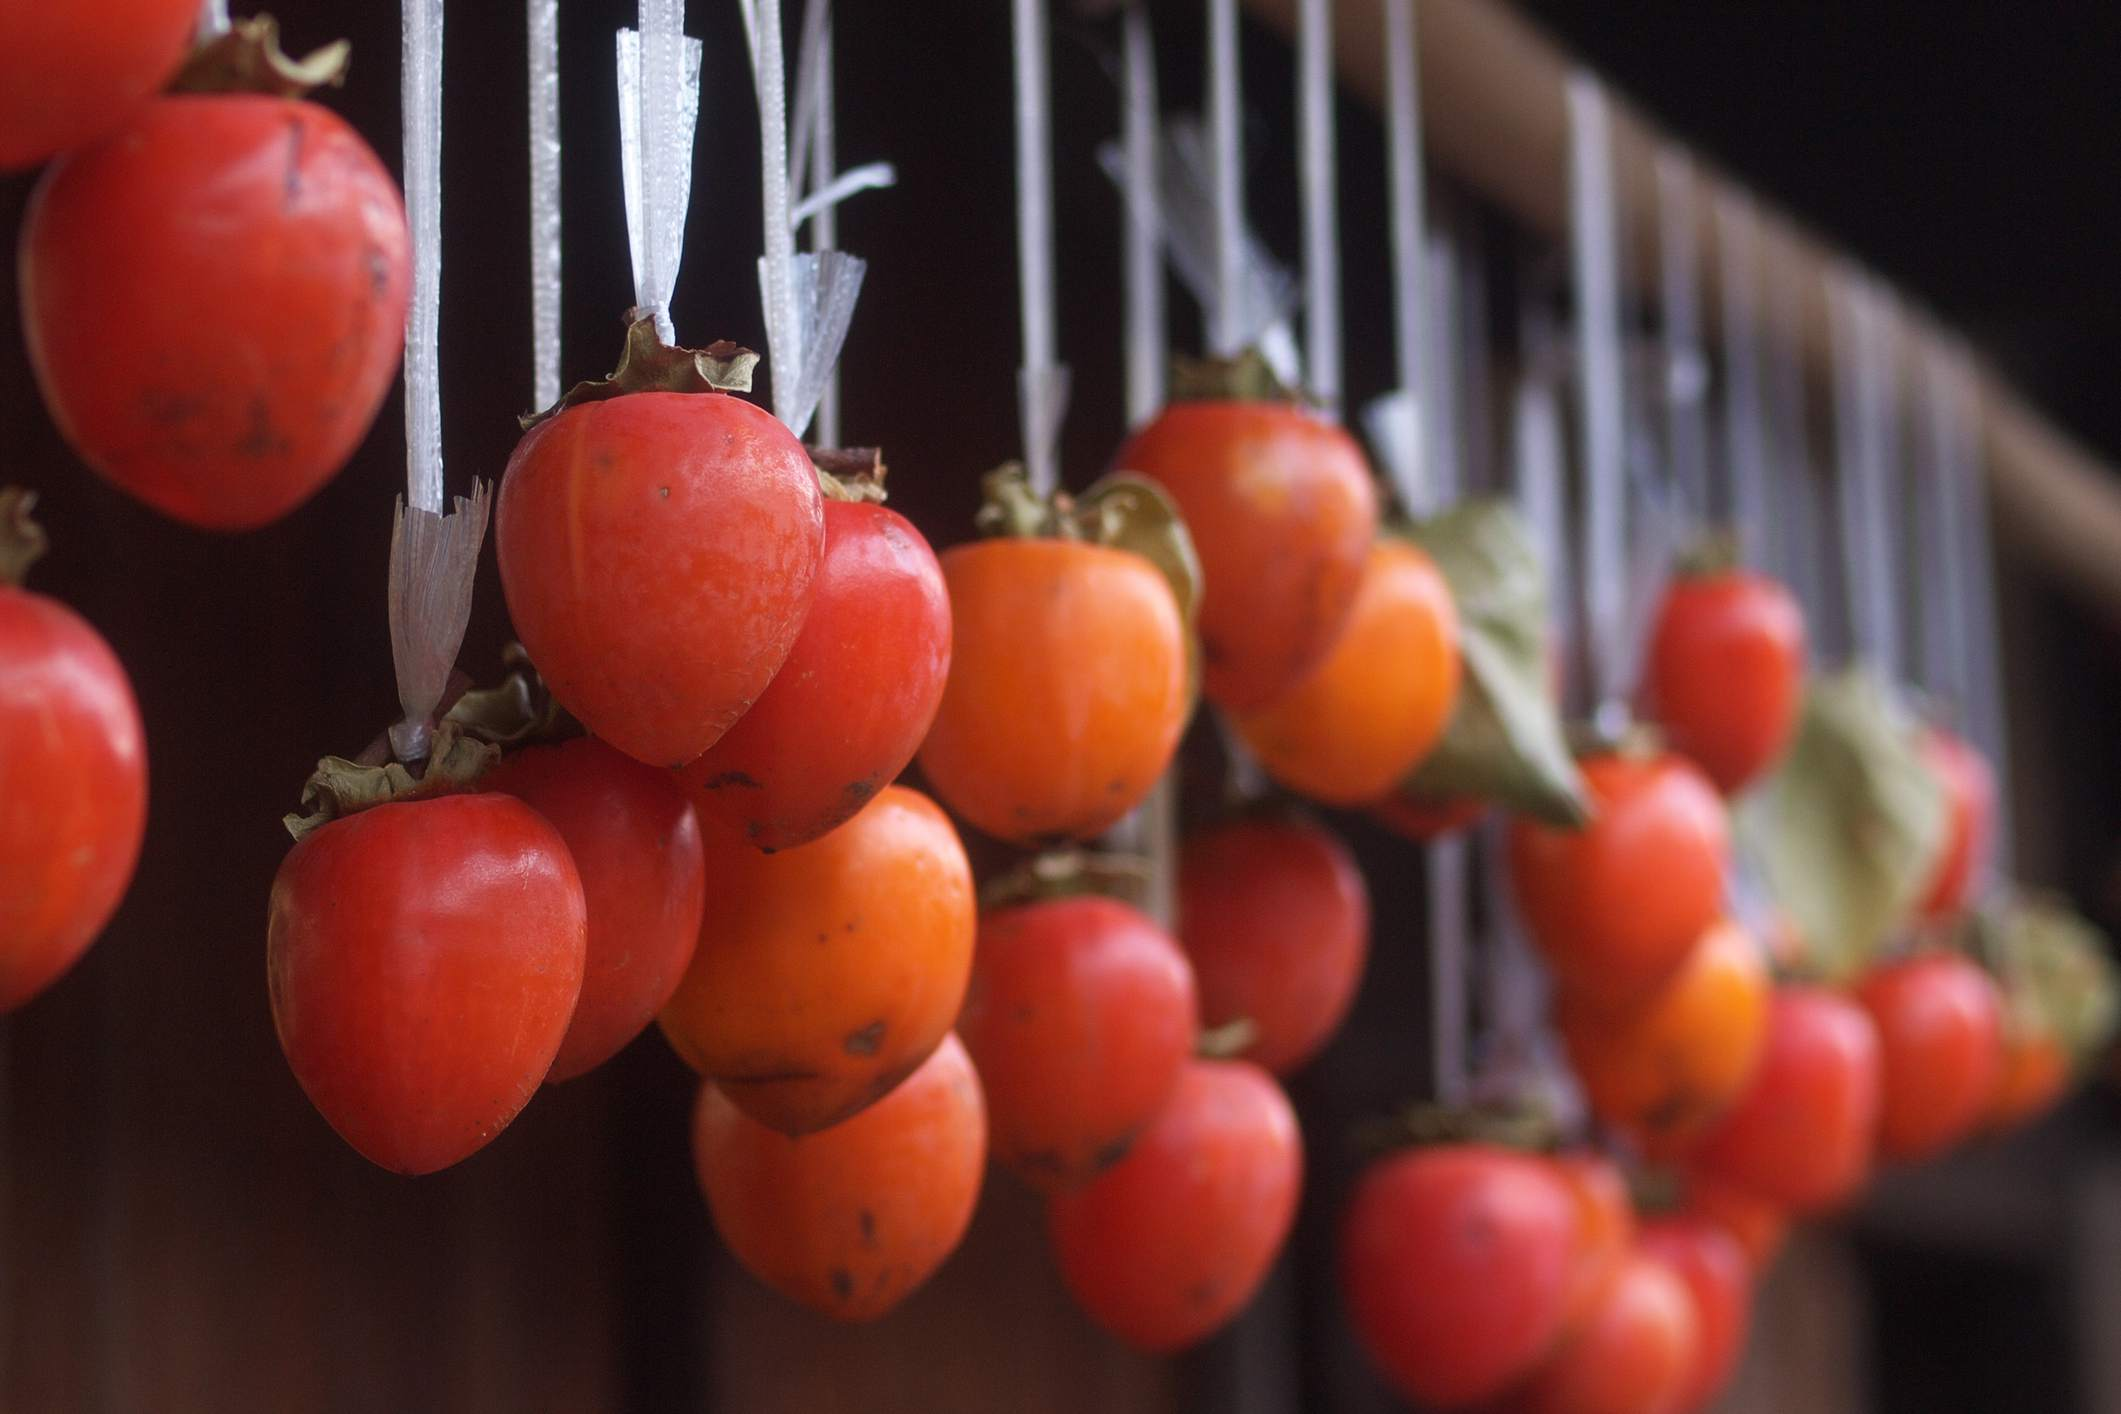 Japanese Persimmons Hung to Dry